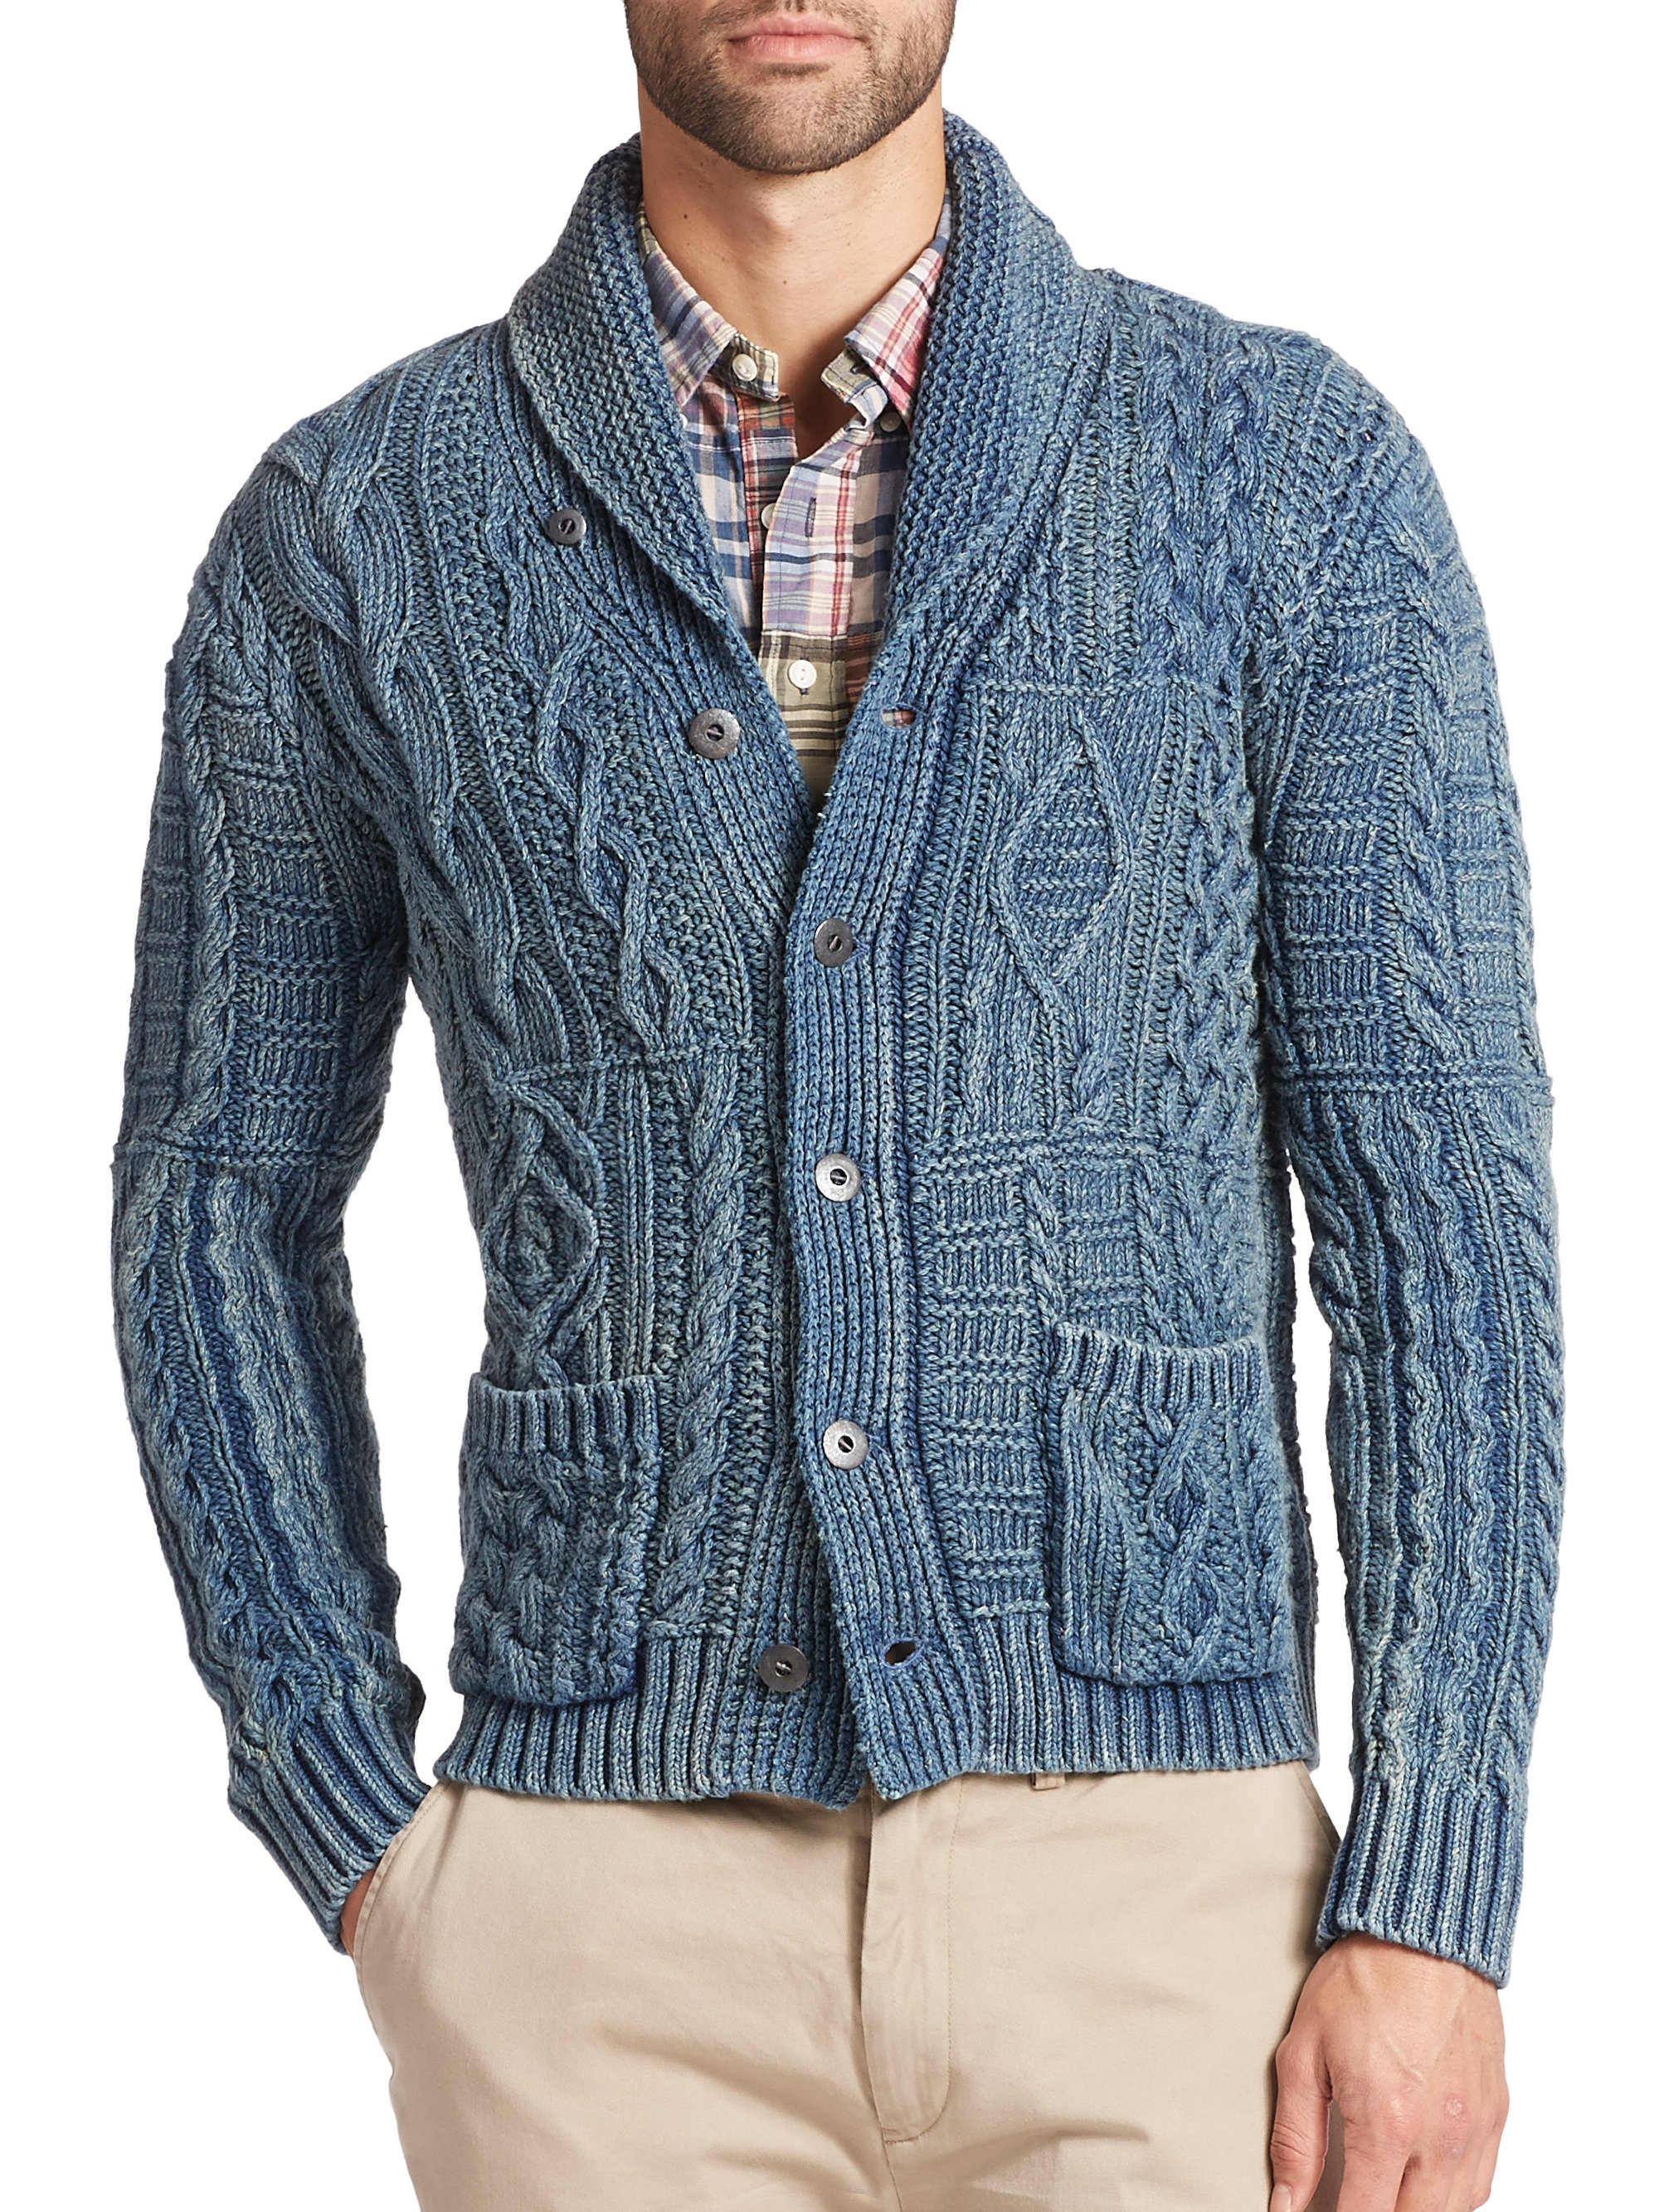 Polo Ralph Lauren Cable Knit Shawl Cardigan In Green For